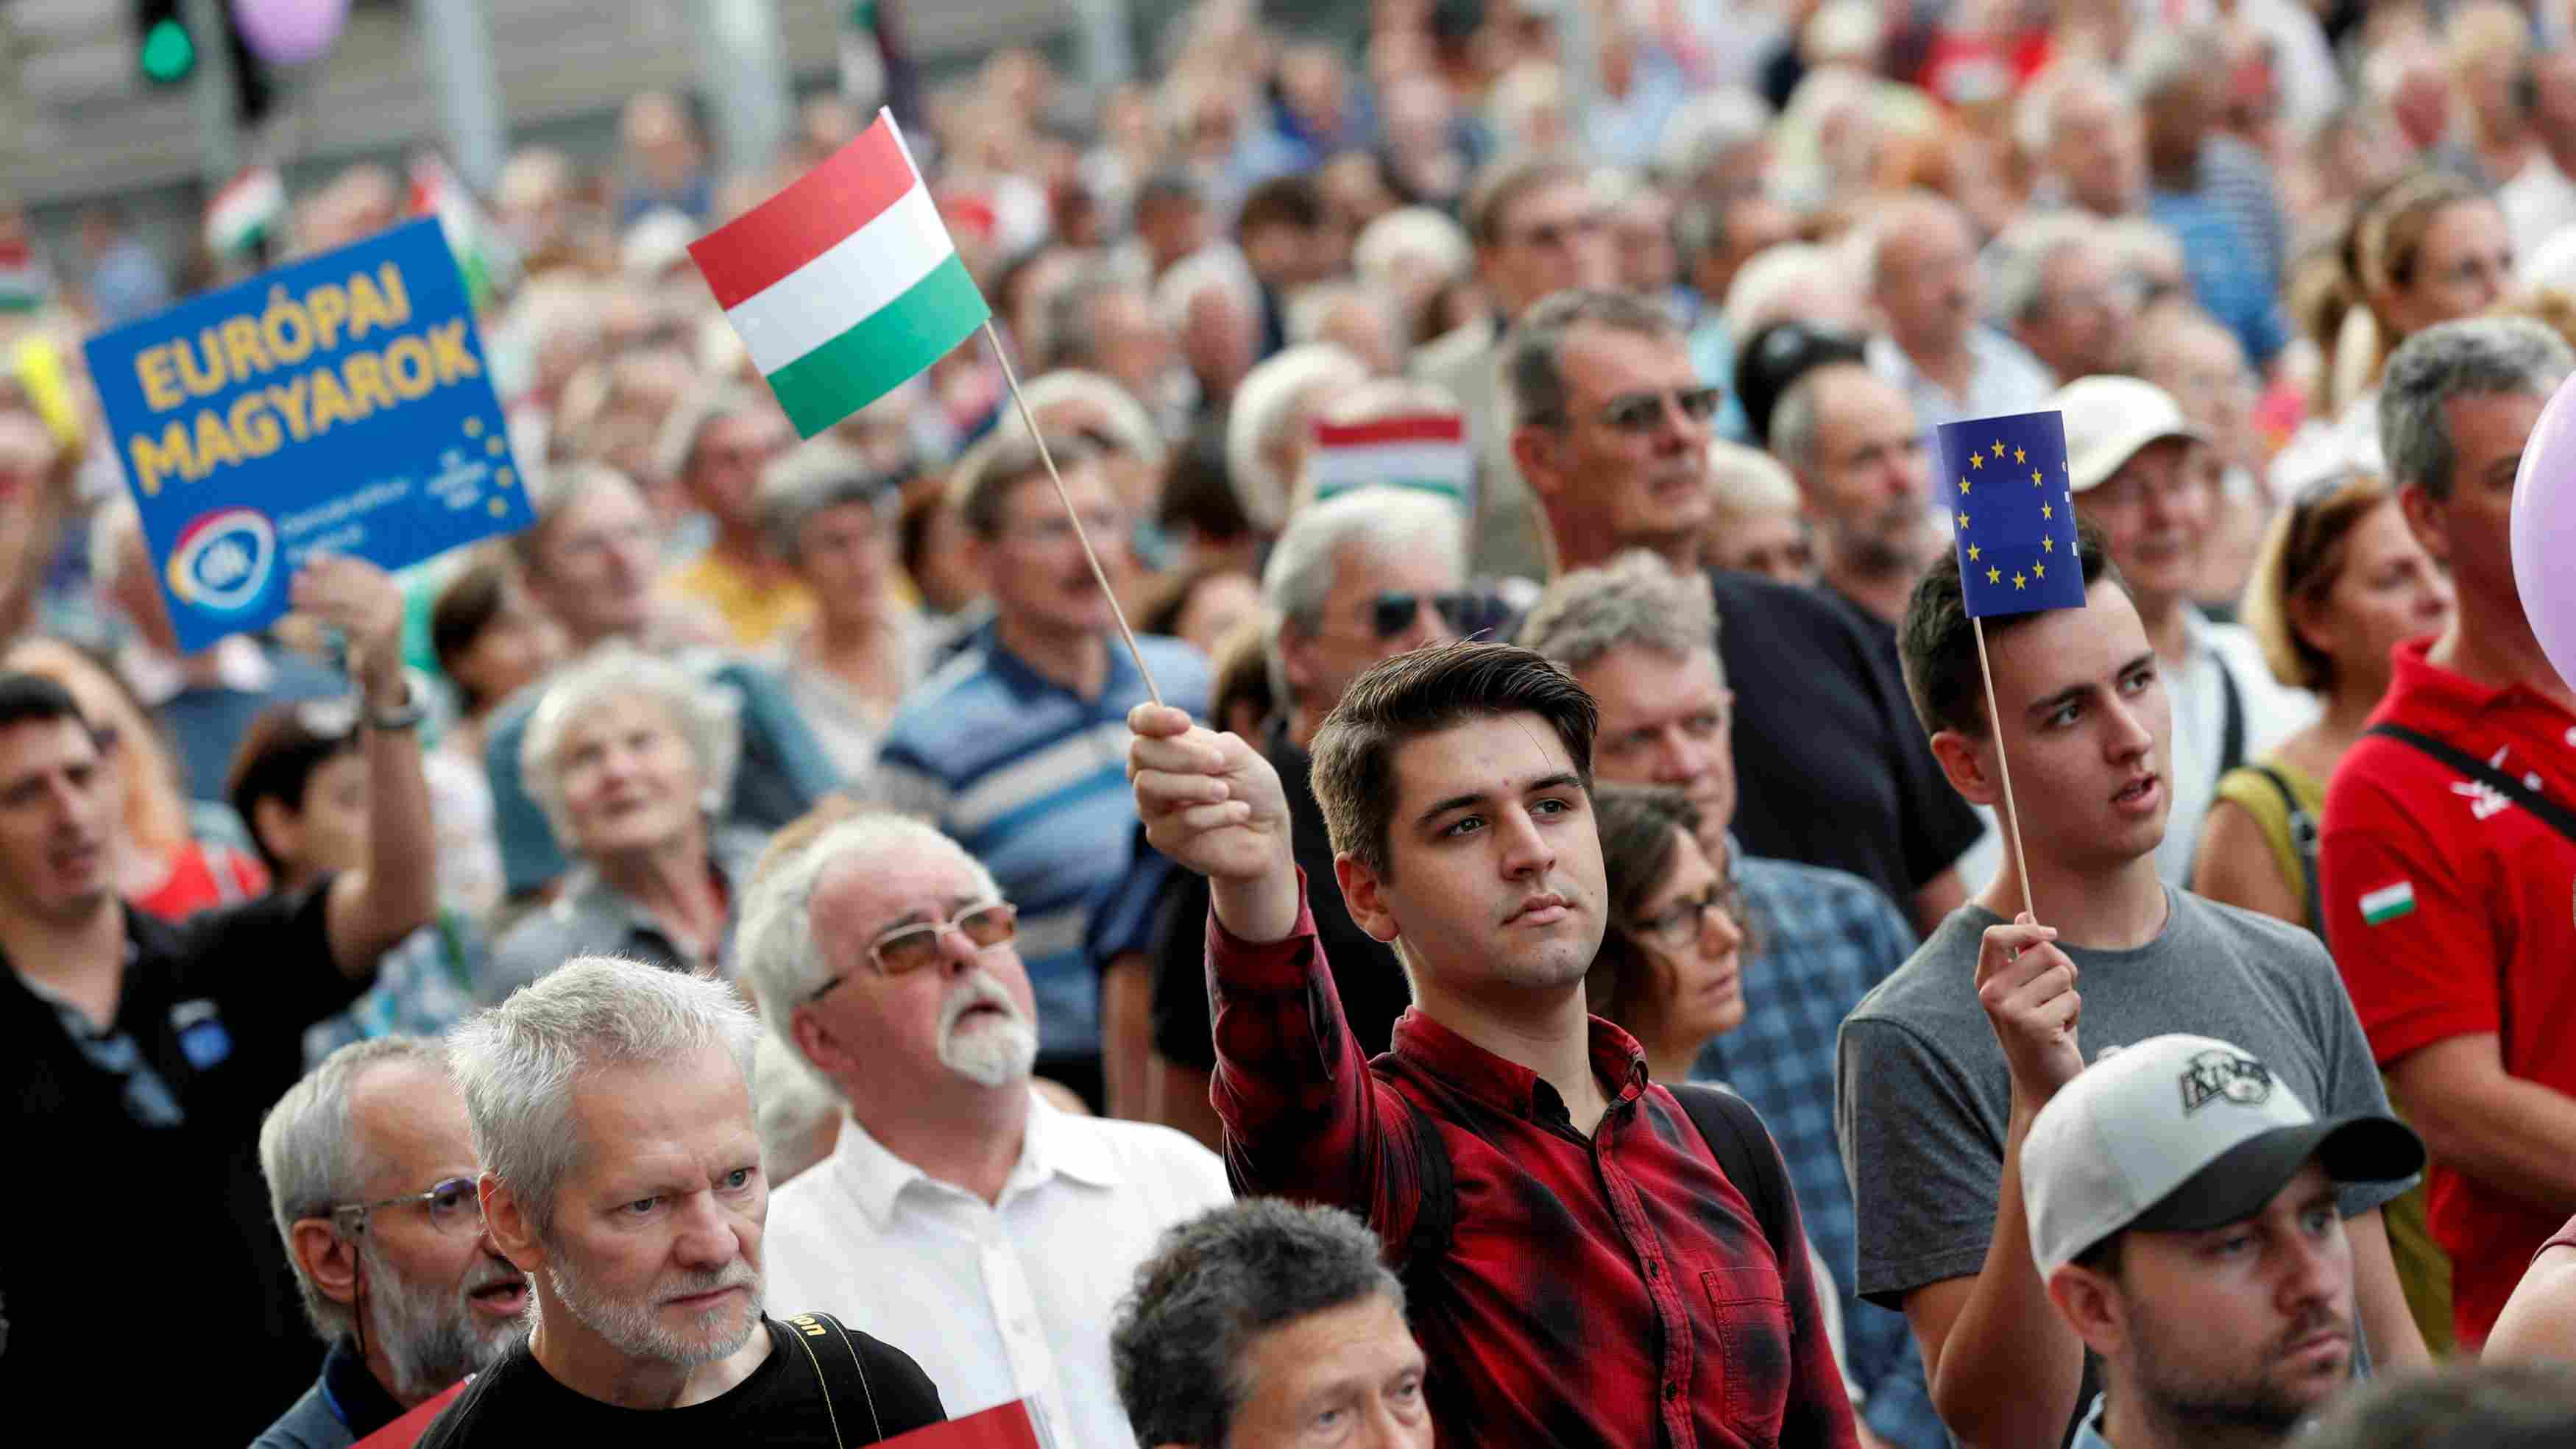 Hungarians protest against PM Orban after EU ruling